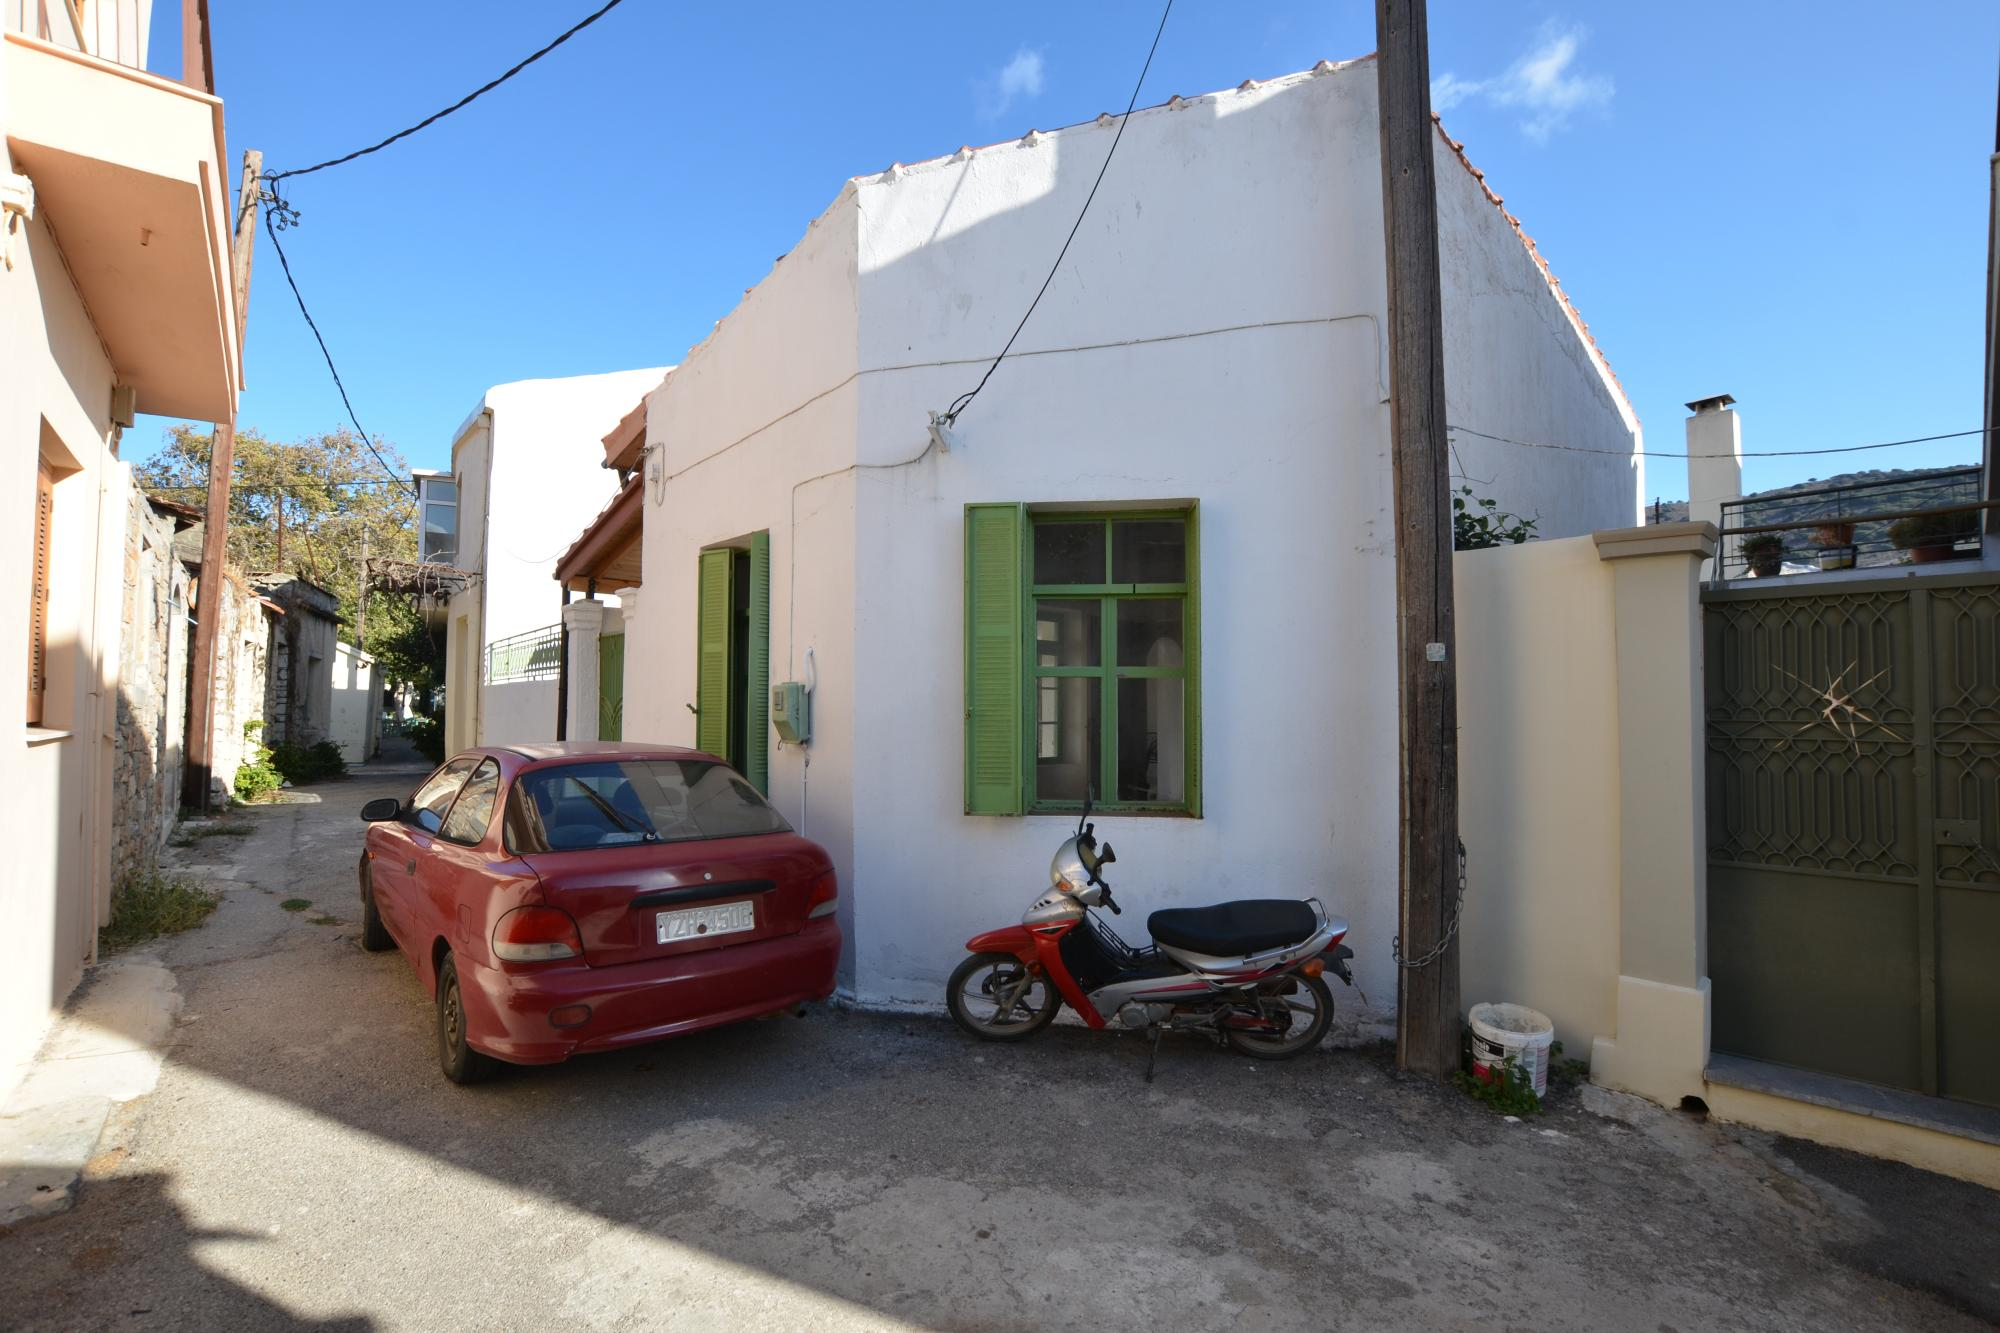 2 bedroom house with nice courtyard in traditional village.